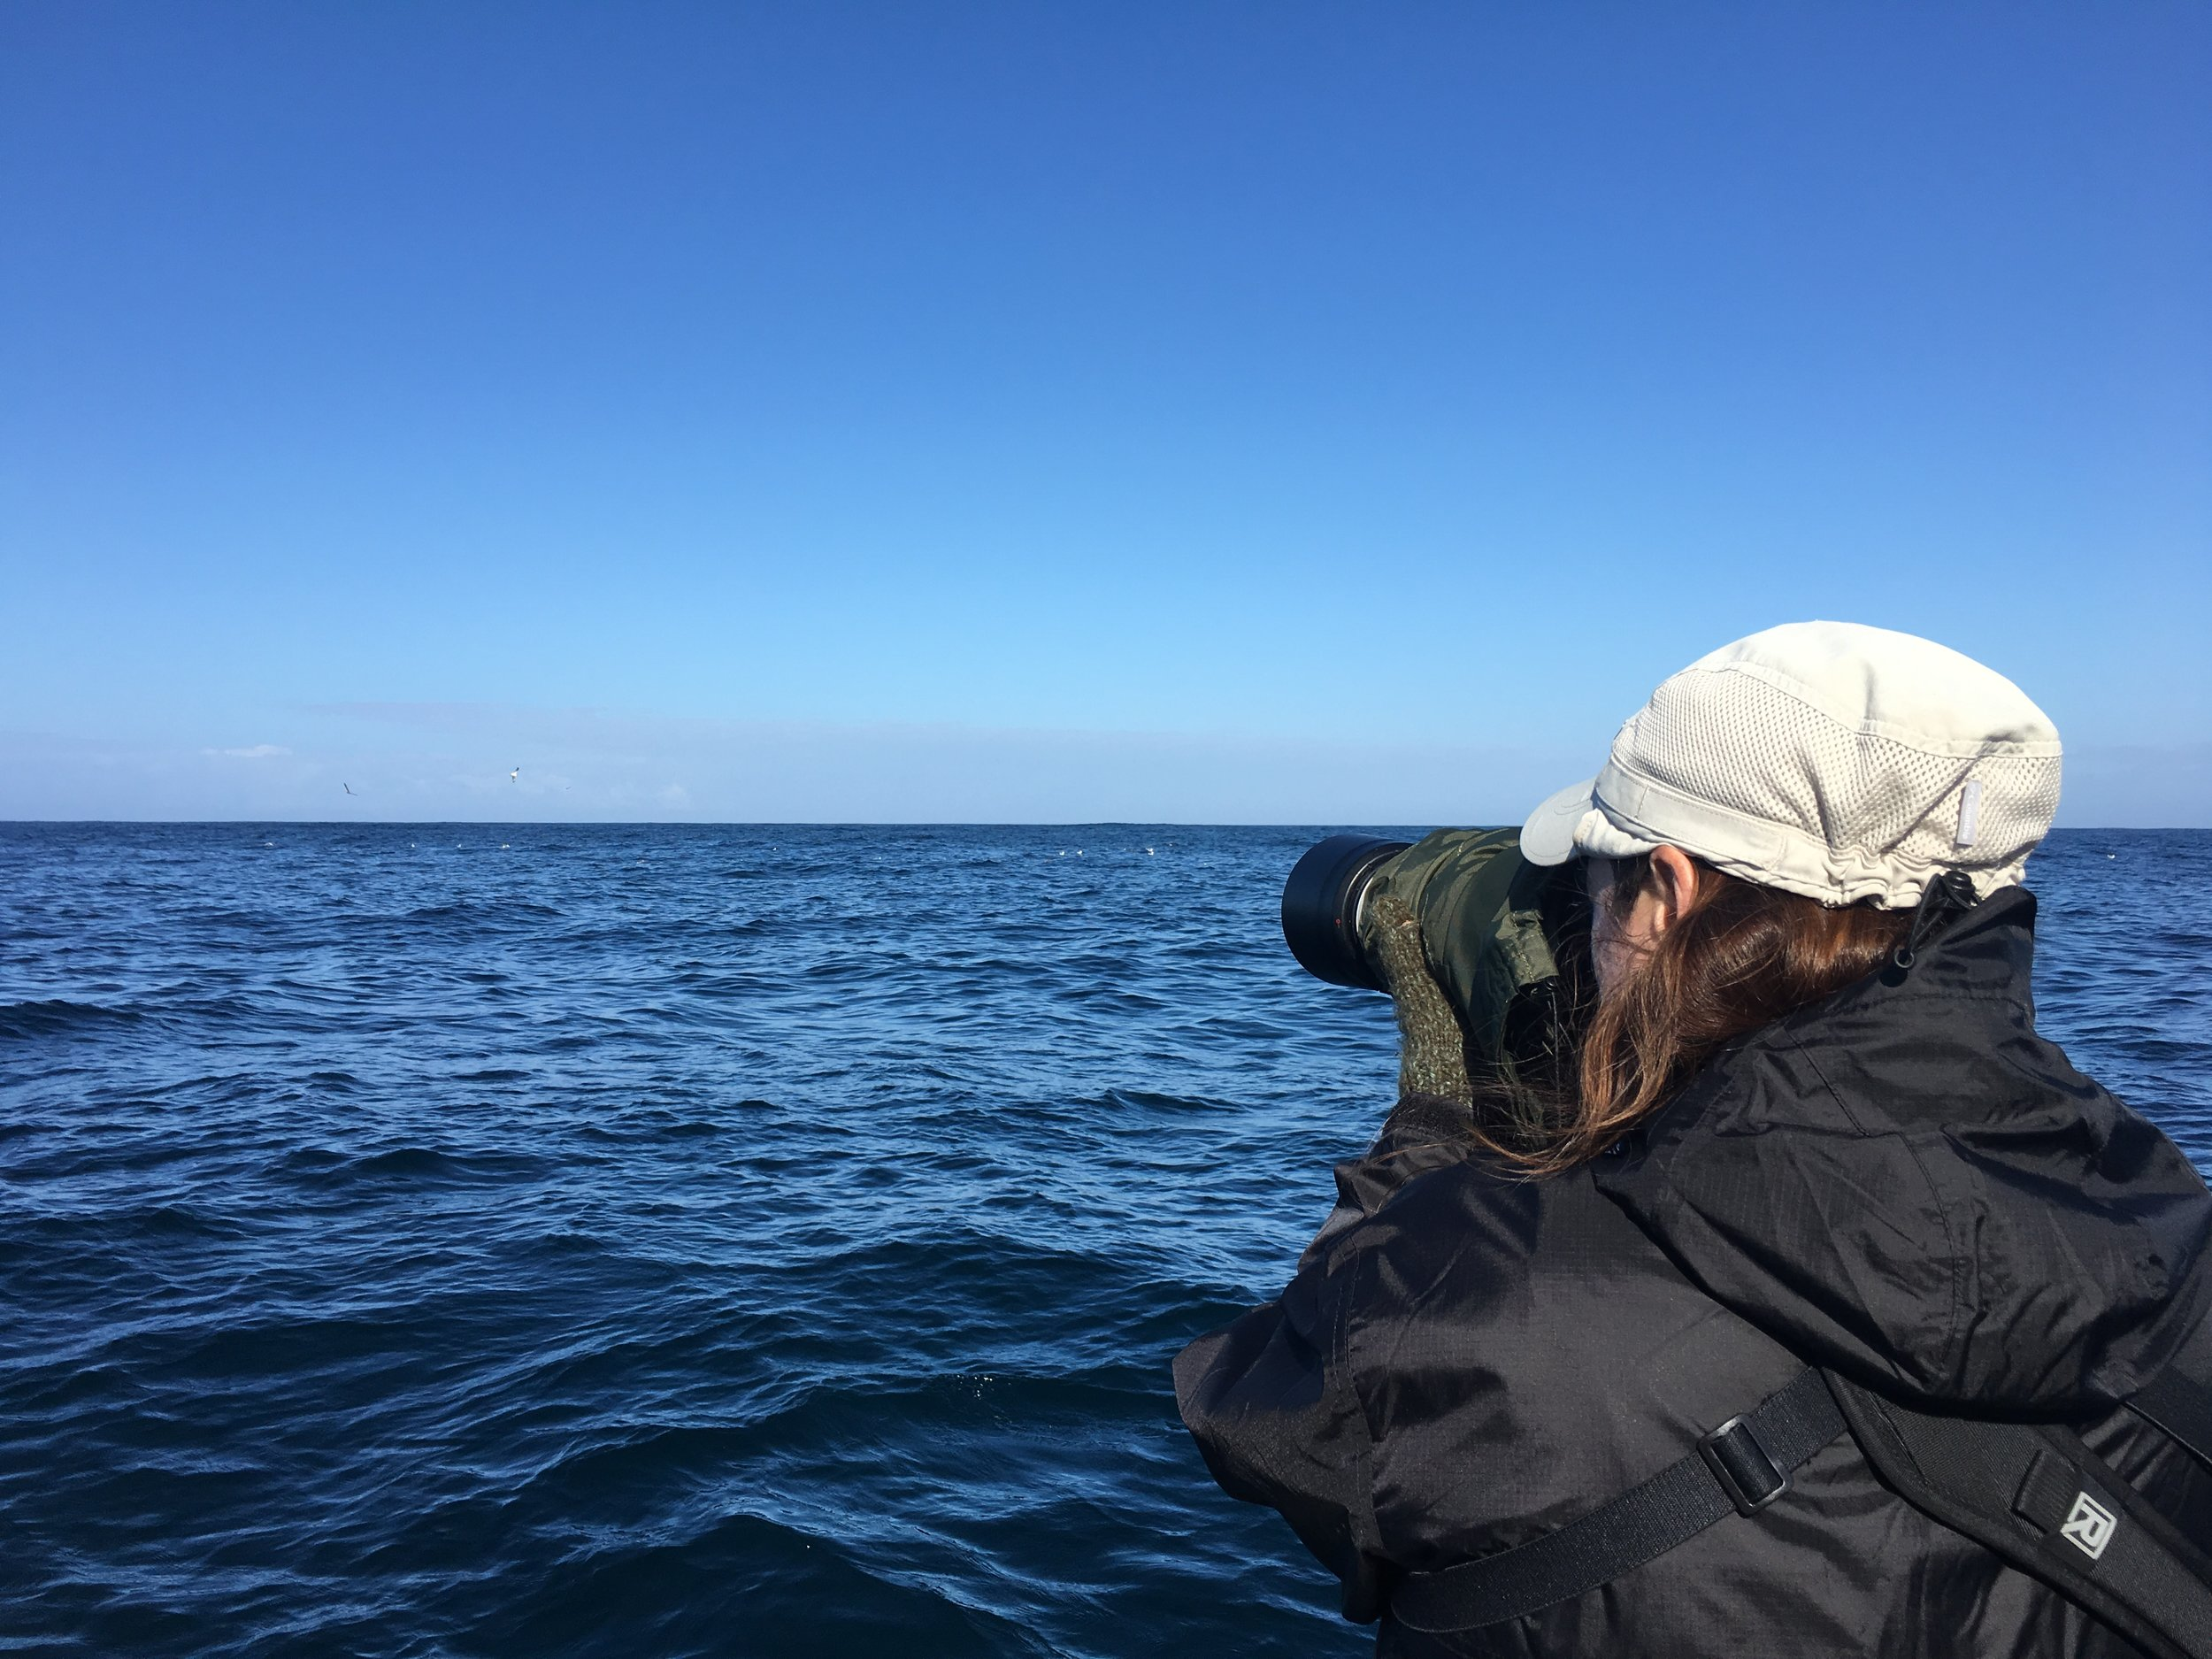 Pelagic Tour participants spotted 12 off-shore species on the tour, as well as a Humpback whale.  Photo by Lila Bowen